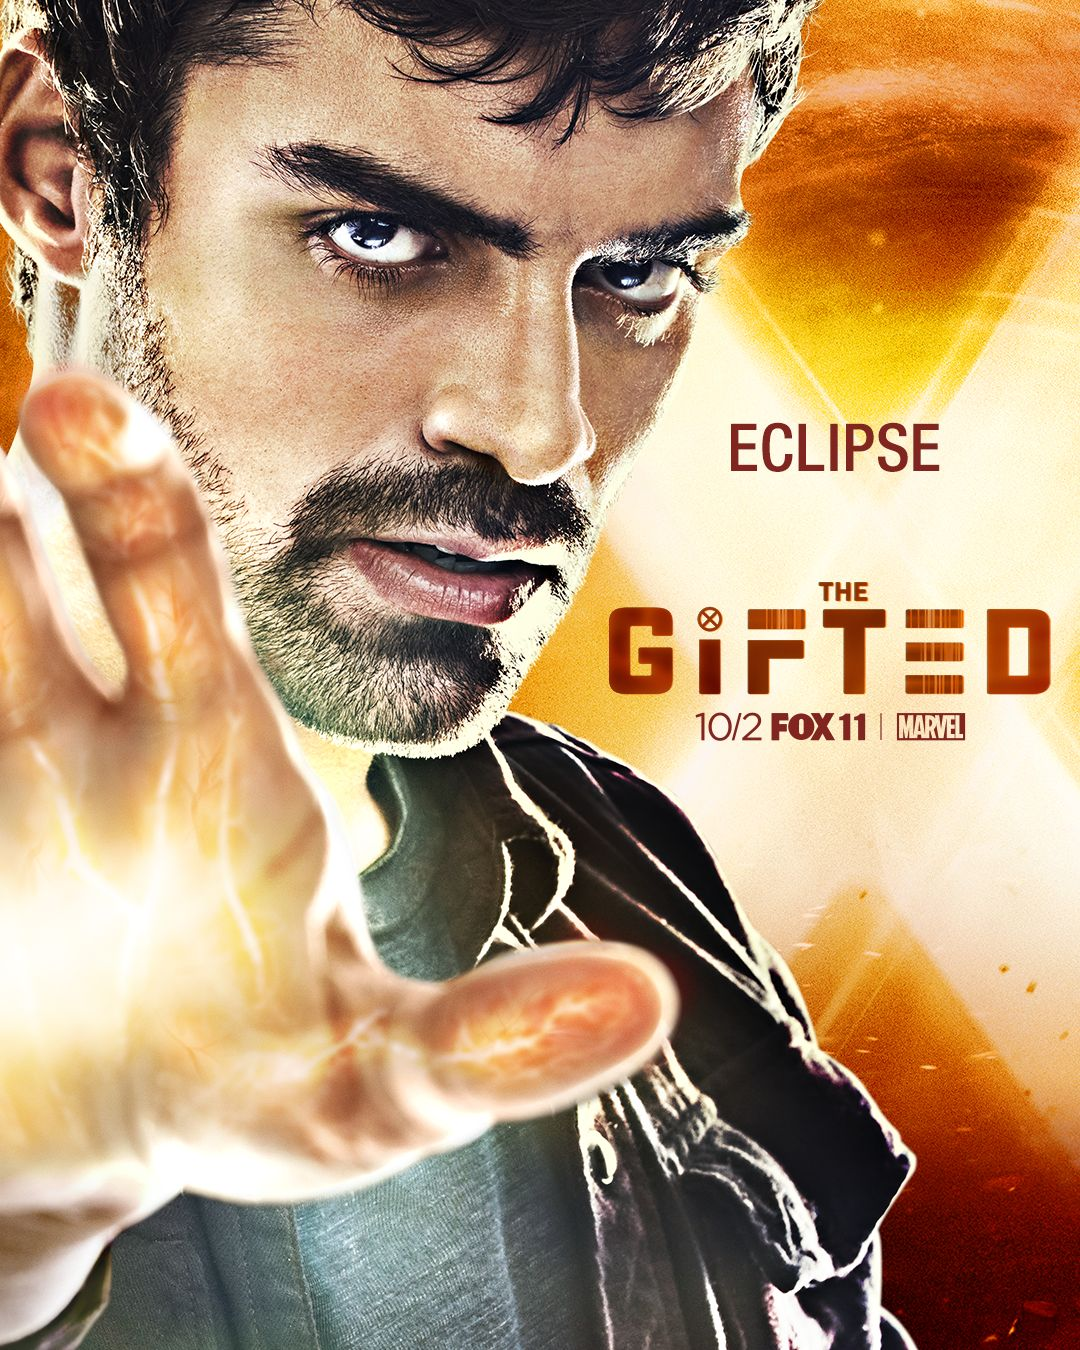 the-gifted-eclipse